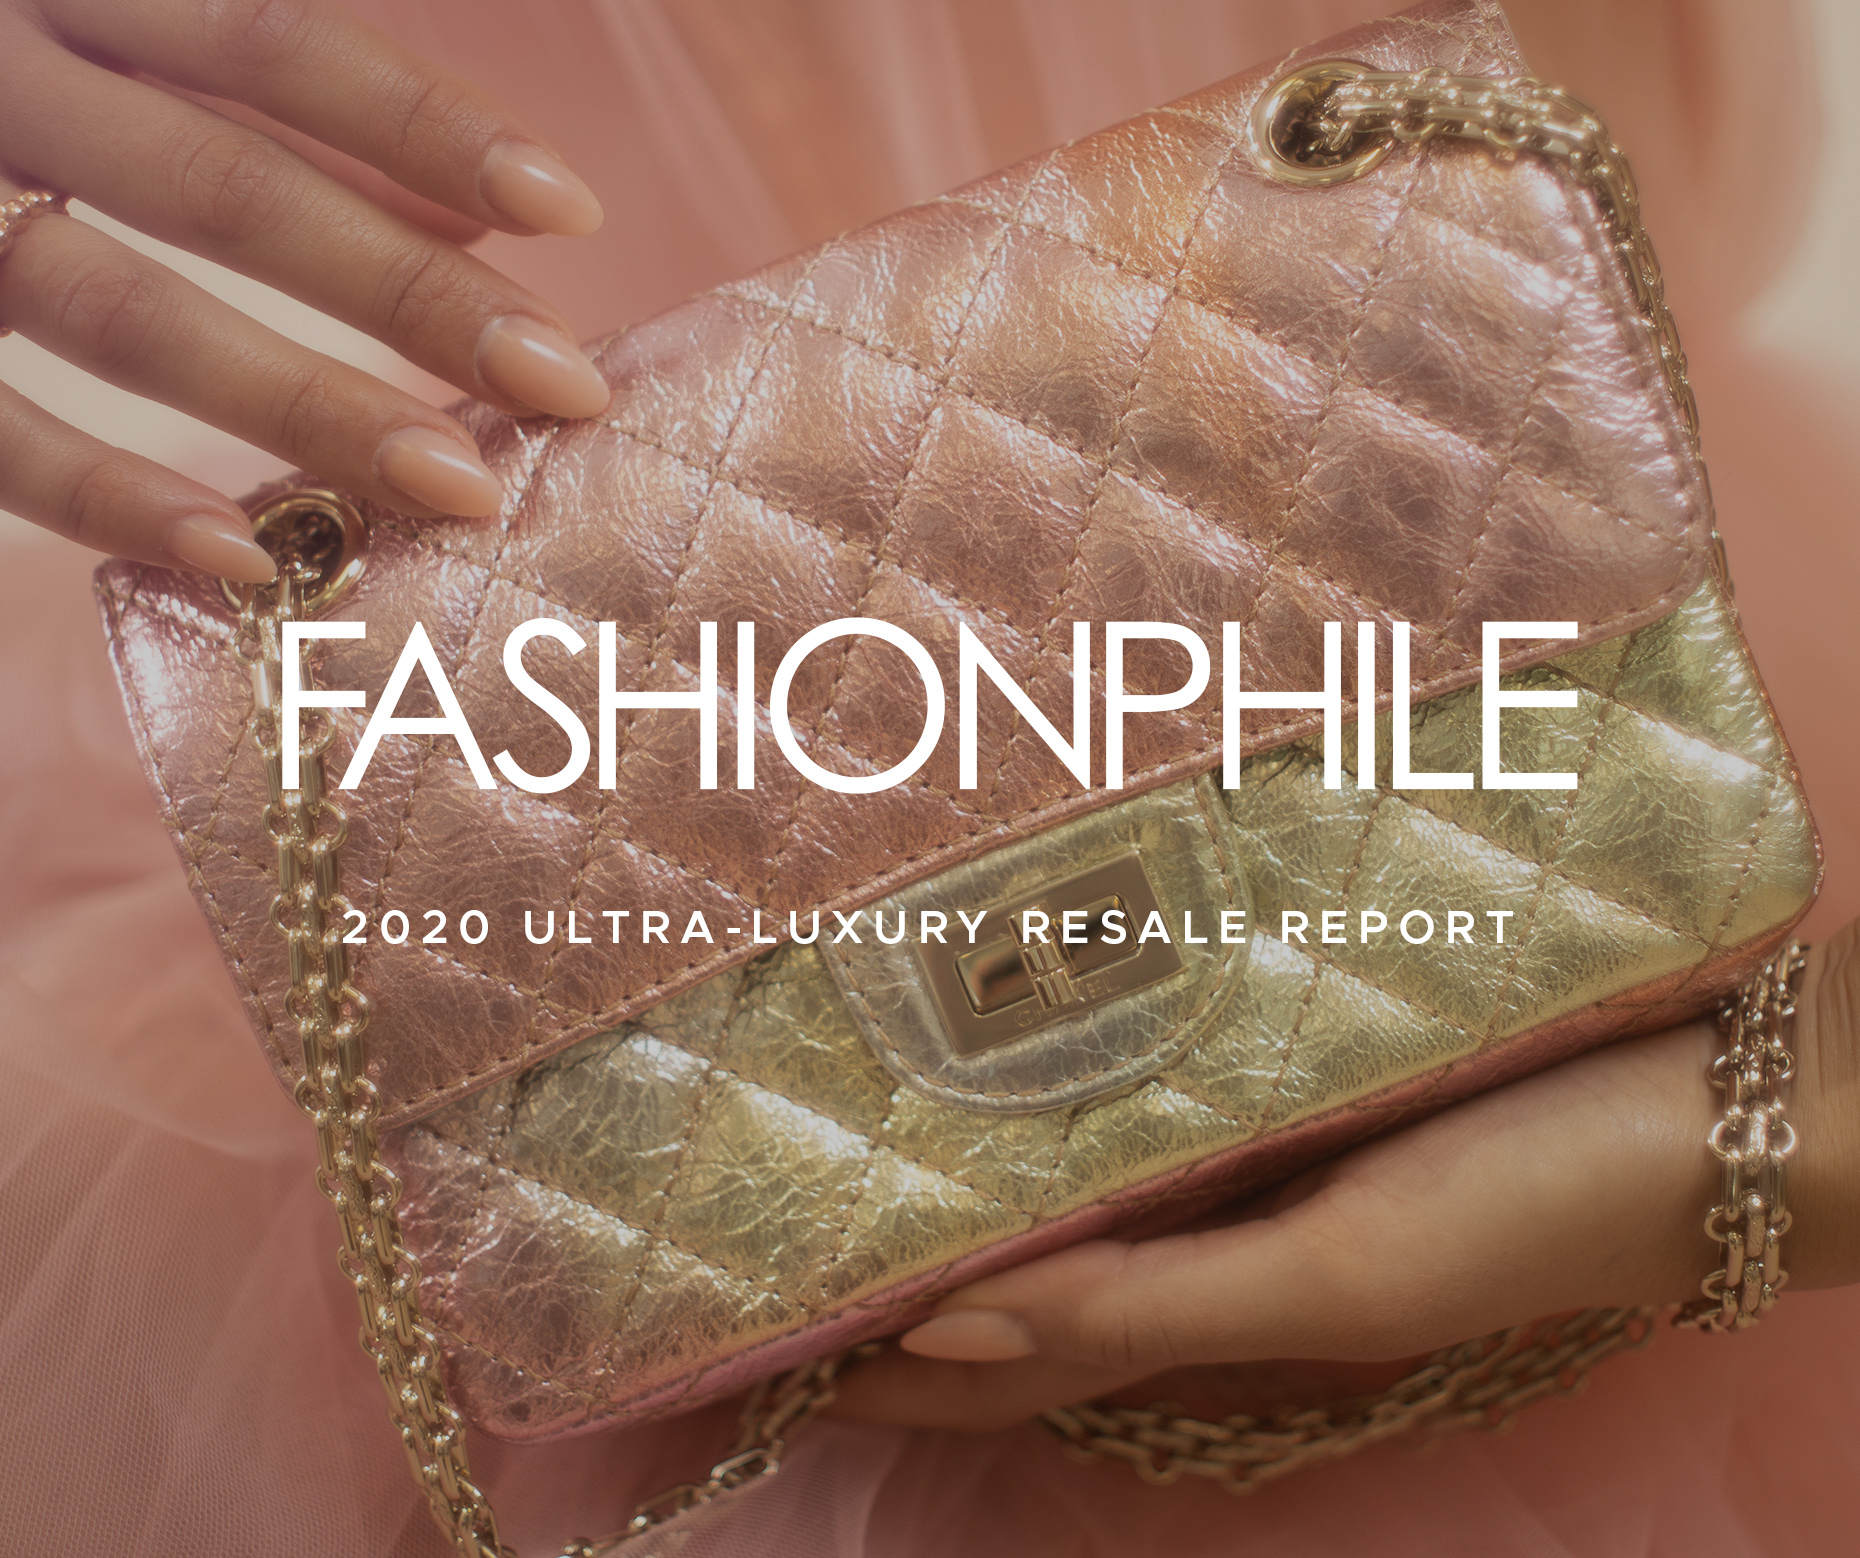 Fashionphile Luxury Resale Report